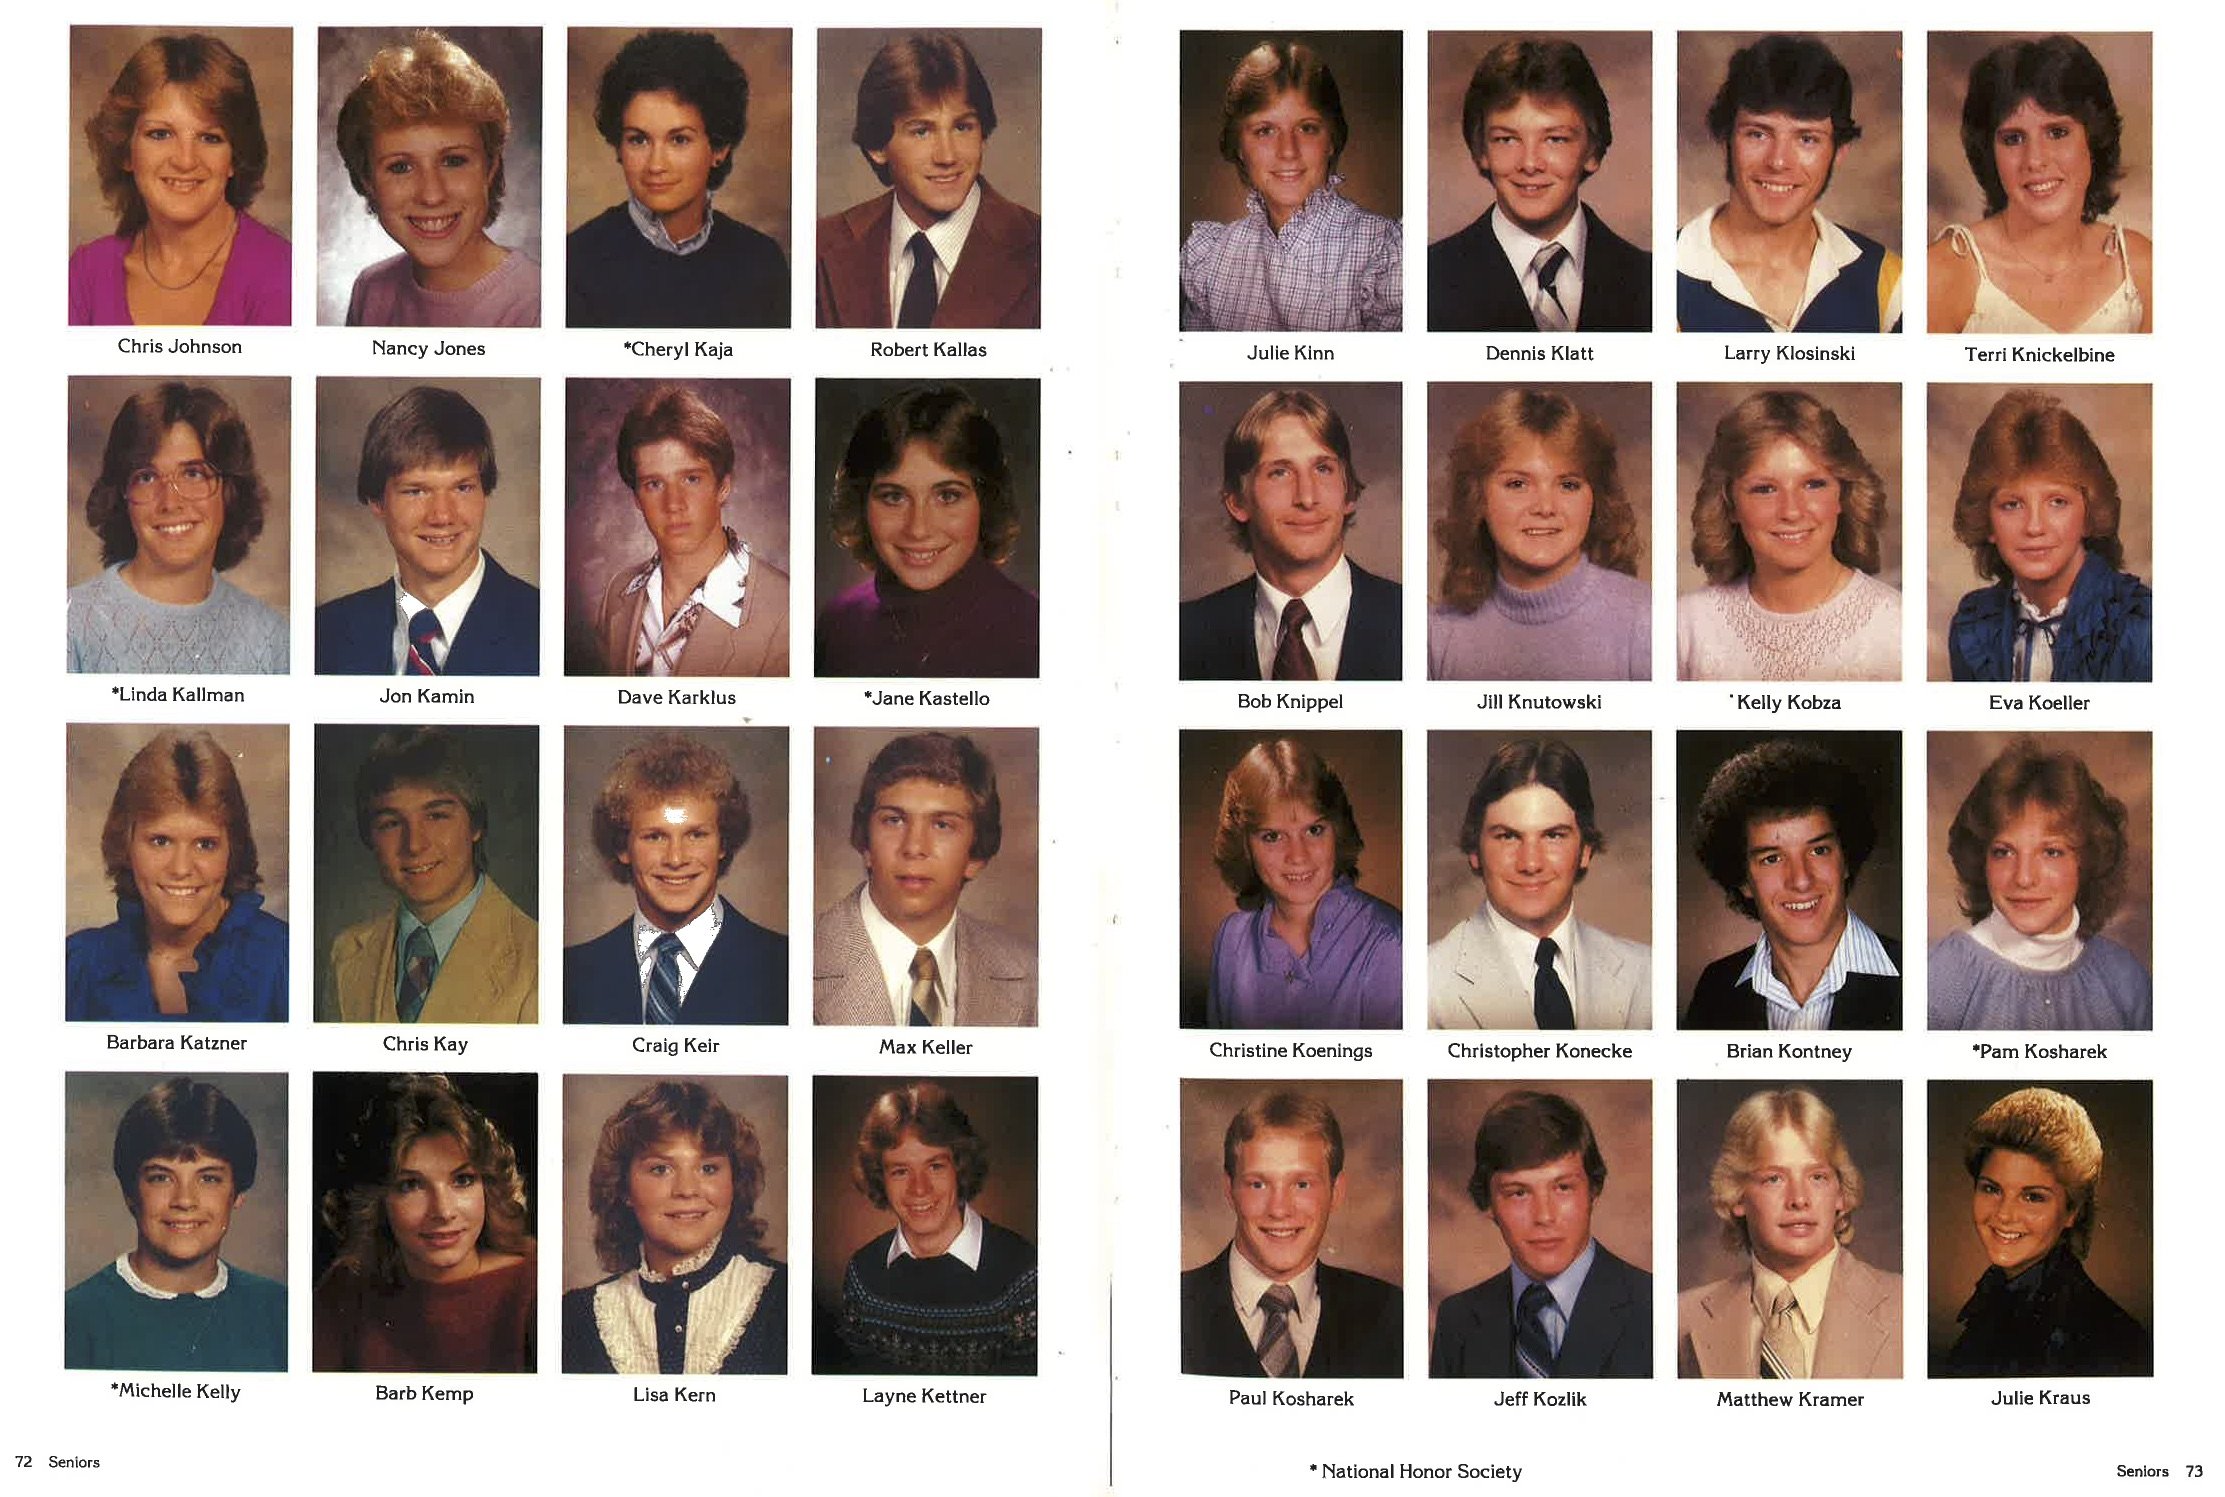 1983_Yearbook_37.jpg